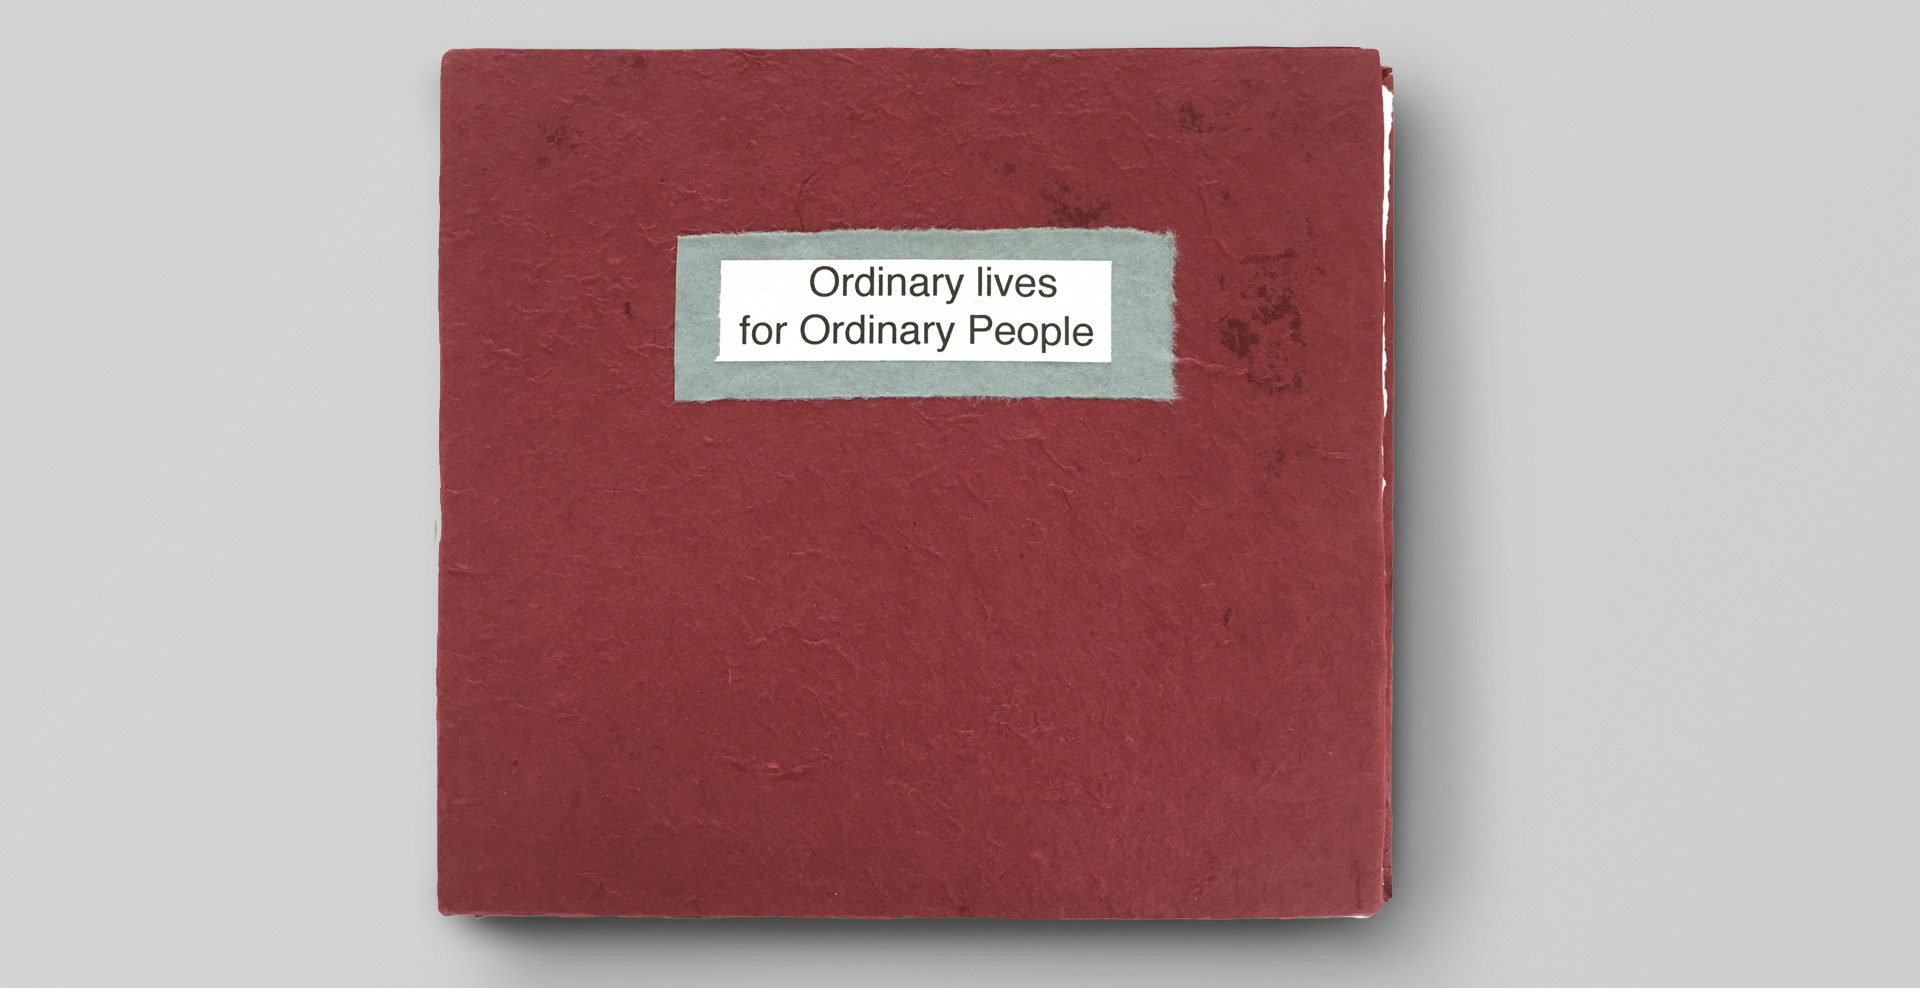 Ordinary lives for ordinary people